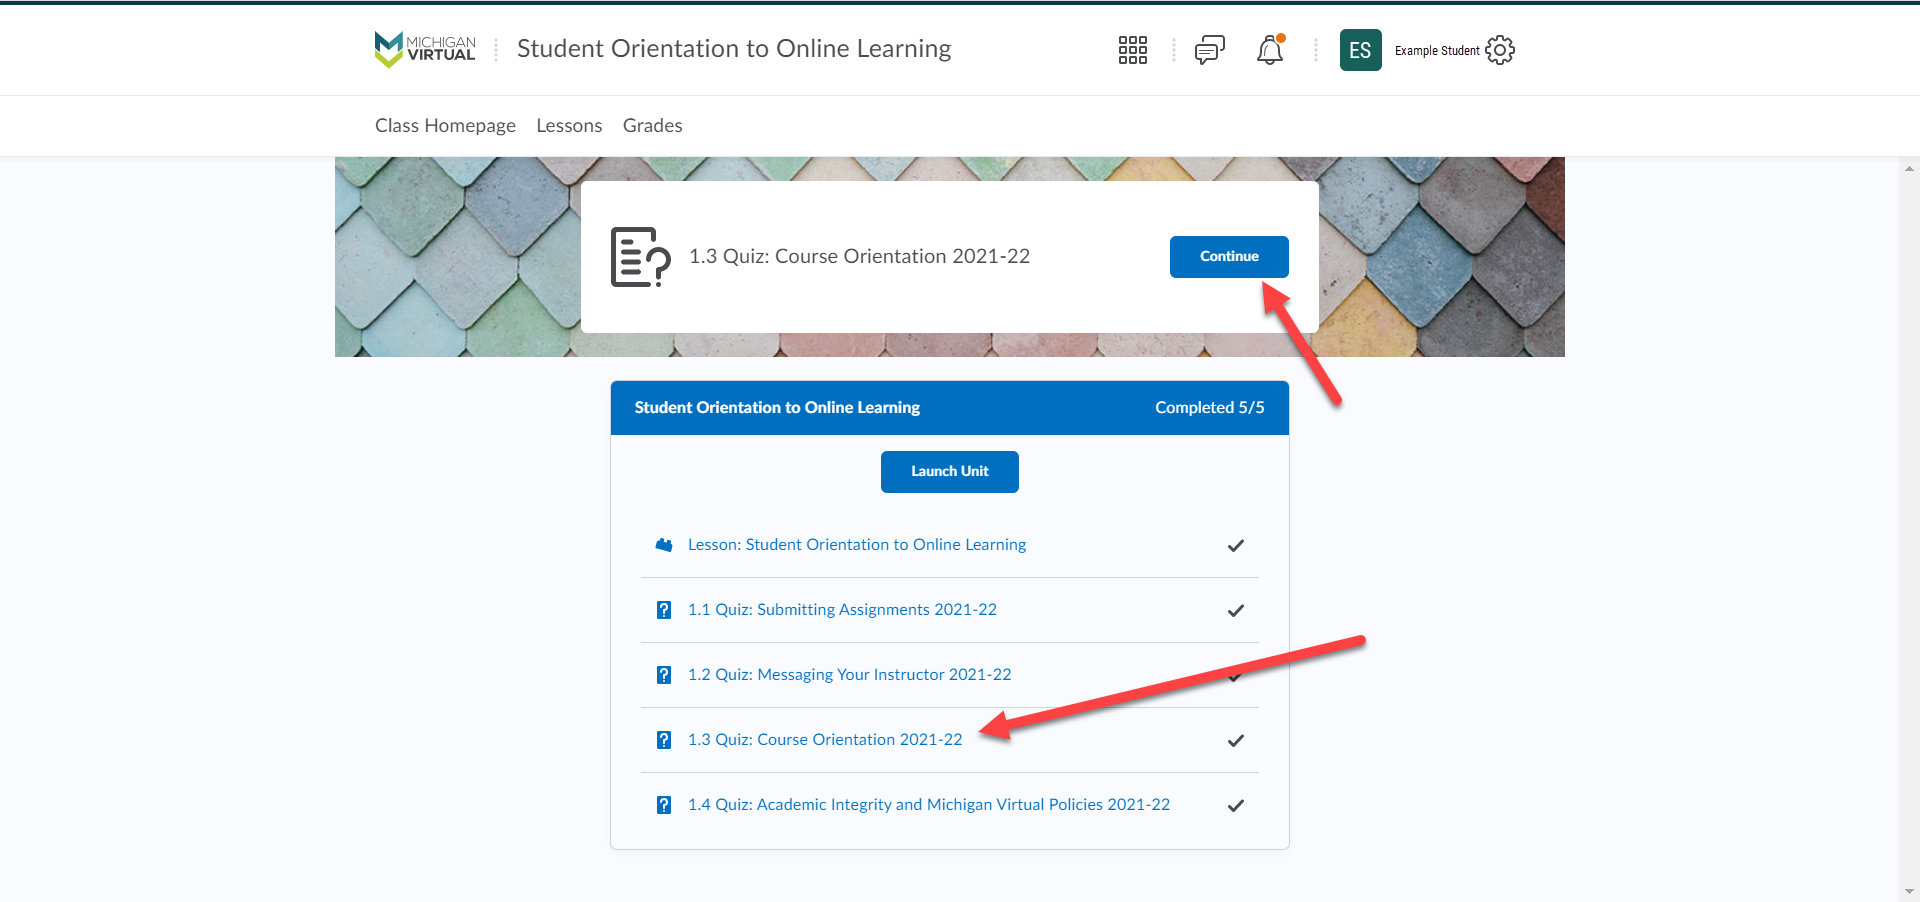 The Lessons page shows arrows pointing to the Lessons option in the navbar and to the Quiz from the step above.